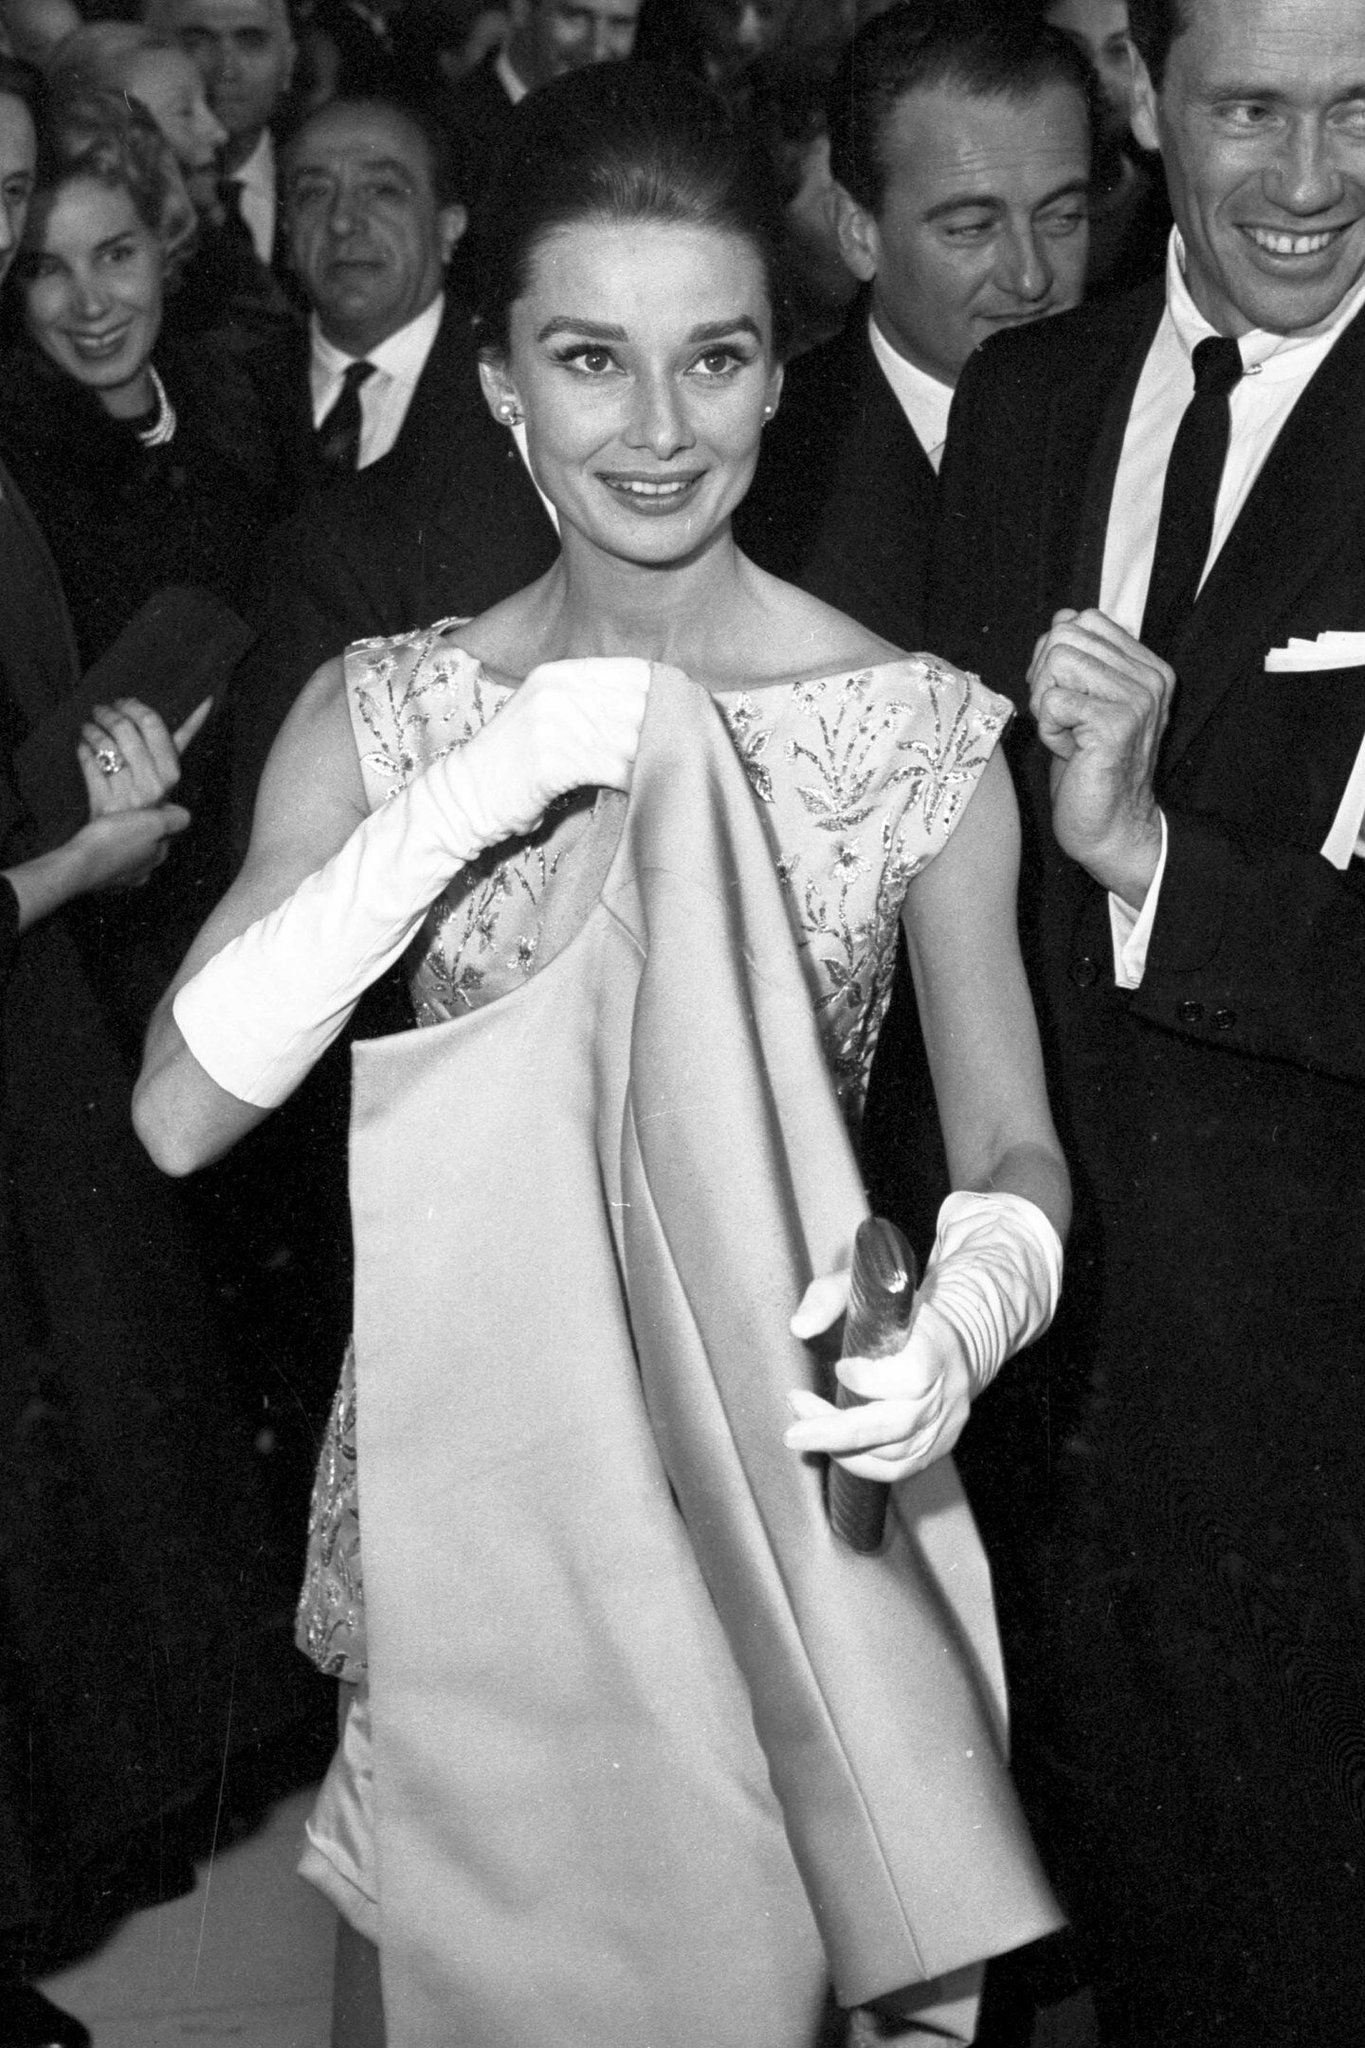 Audrey Hepburn and Mel Ferrer photographed at The Nun's Story premiere, Rome, 1959 https://t.co/gGKrZOJqkg